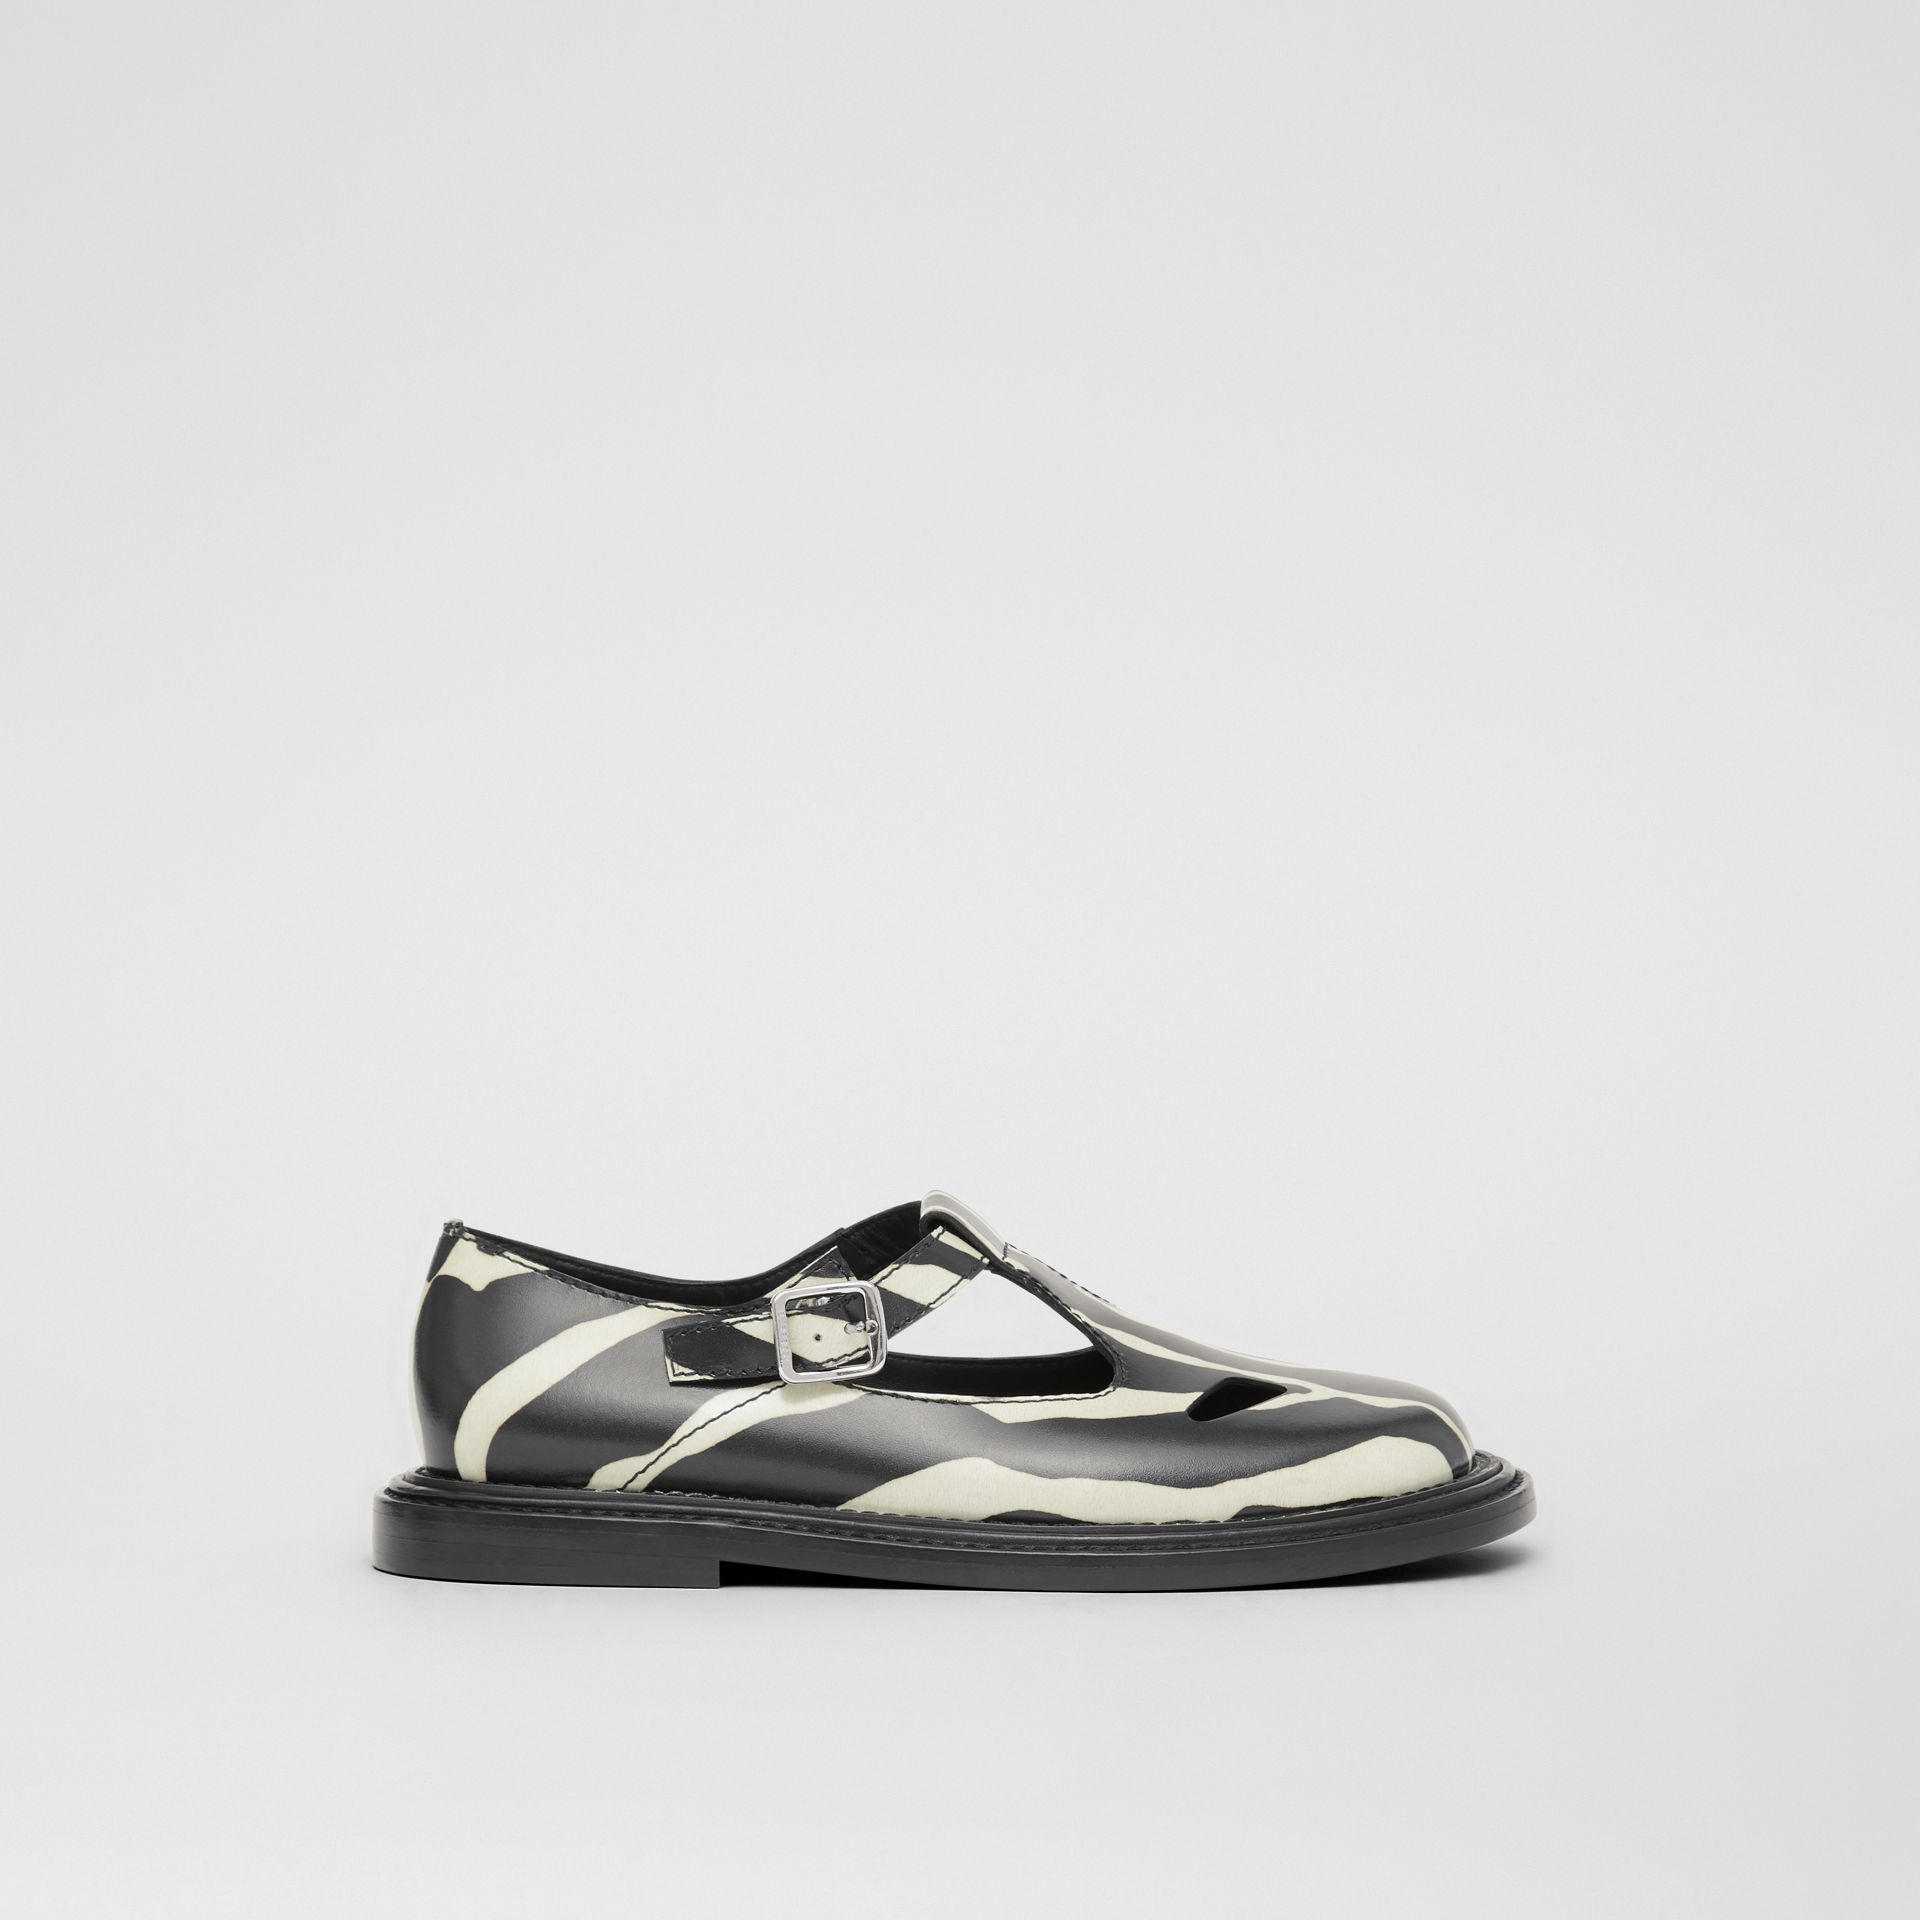 Zebra Print Leather T-bar Shoes in Black/white - Women | Burberry United Kingdom - gallery image 4